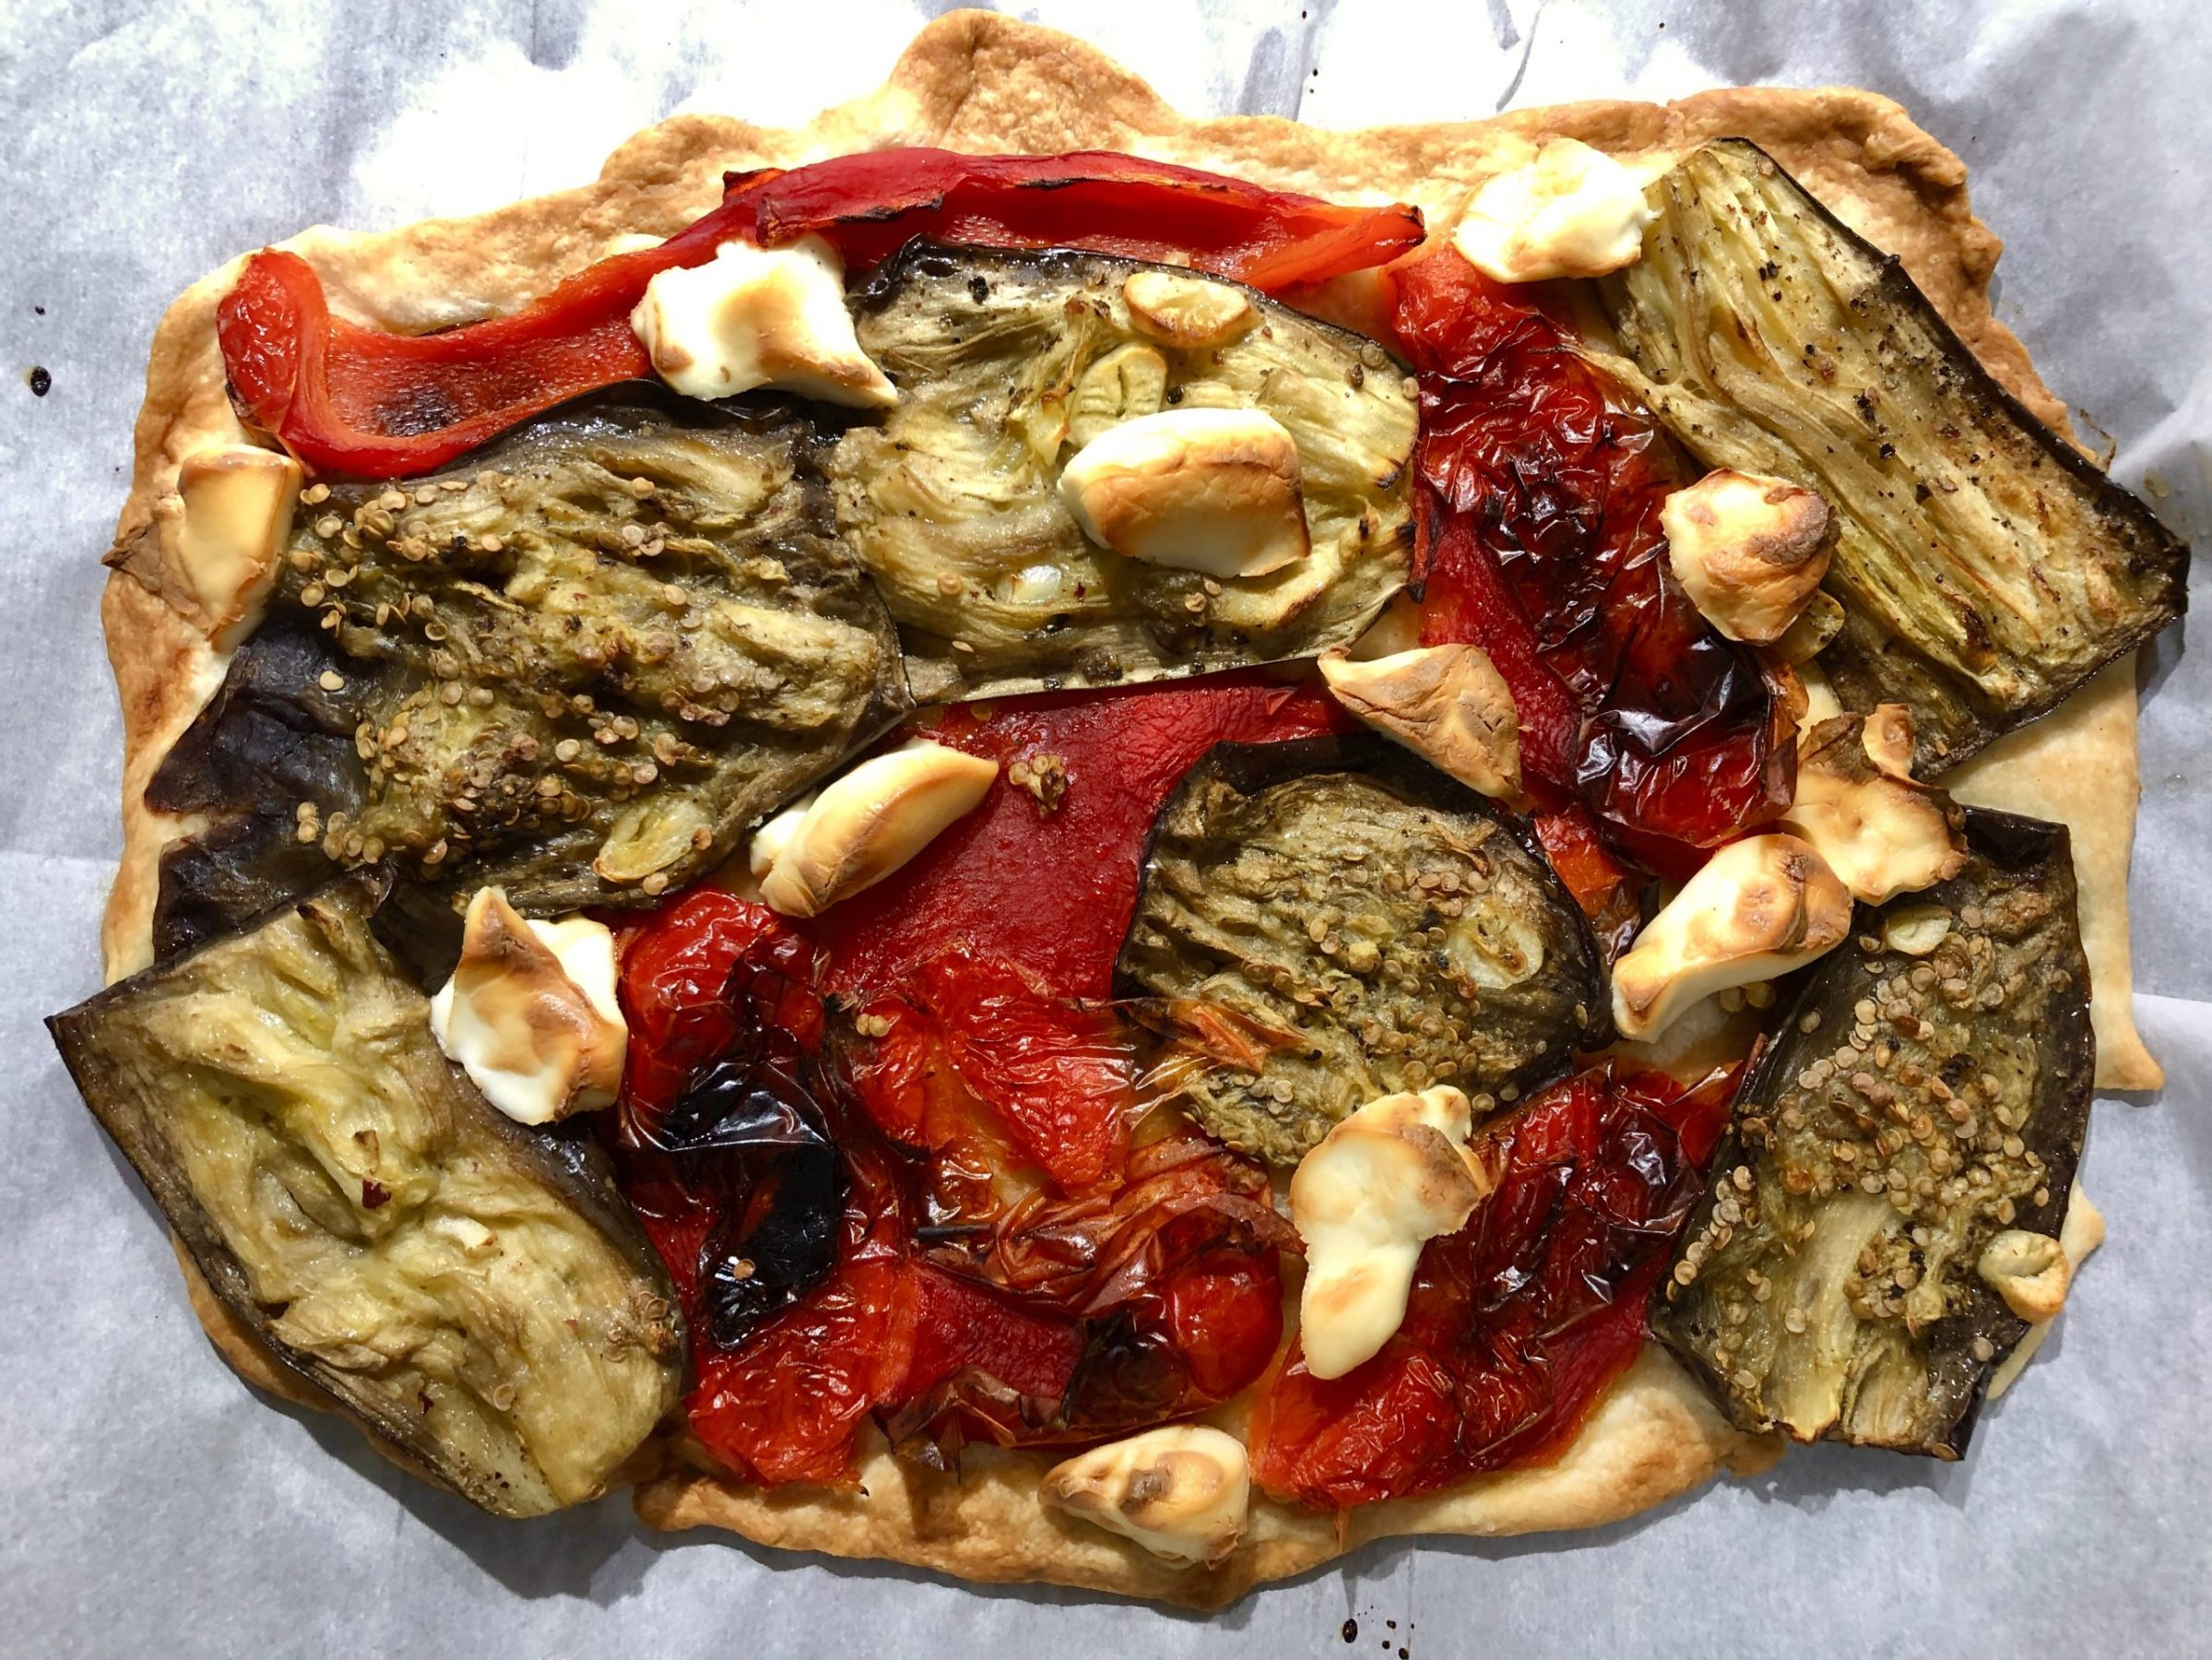 Galette with peppers, aubergines and goat cheese